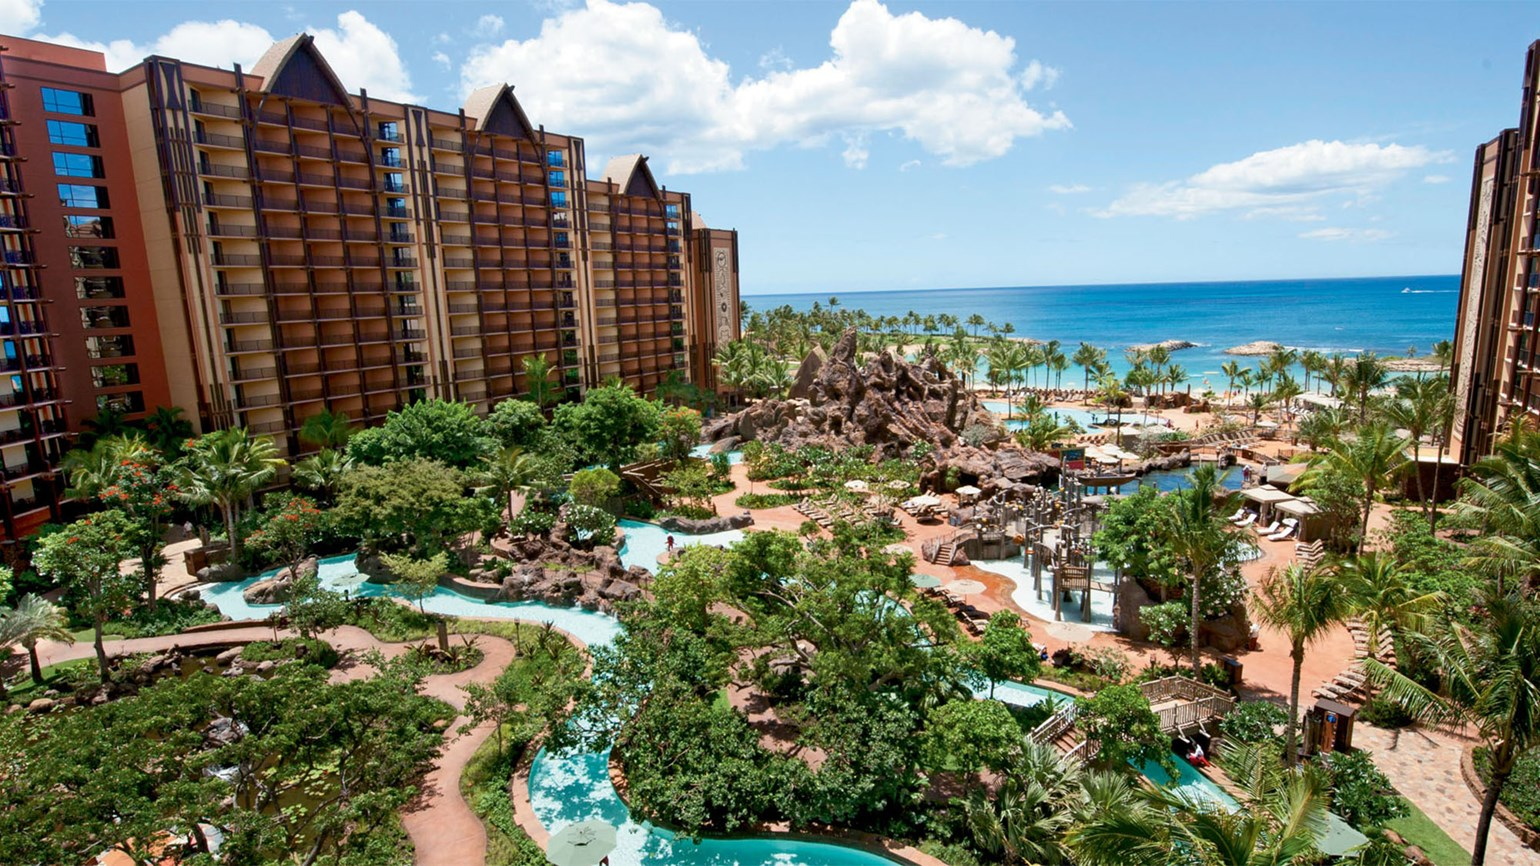 Disney's Aulani resort is a popular Hawaii destination for family vacations.